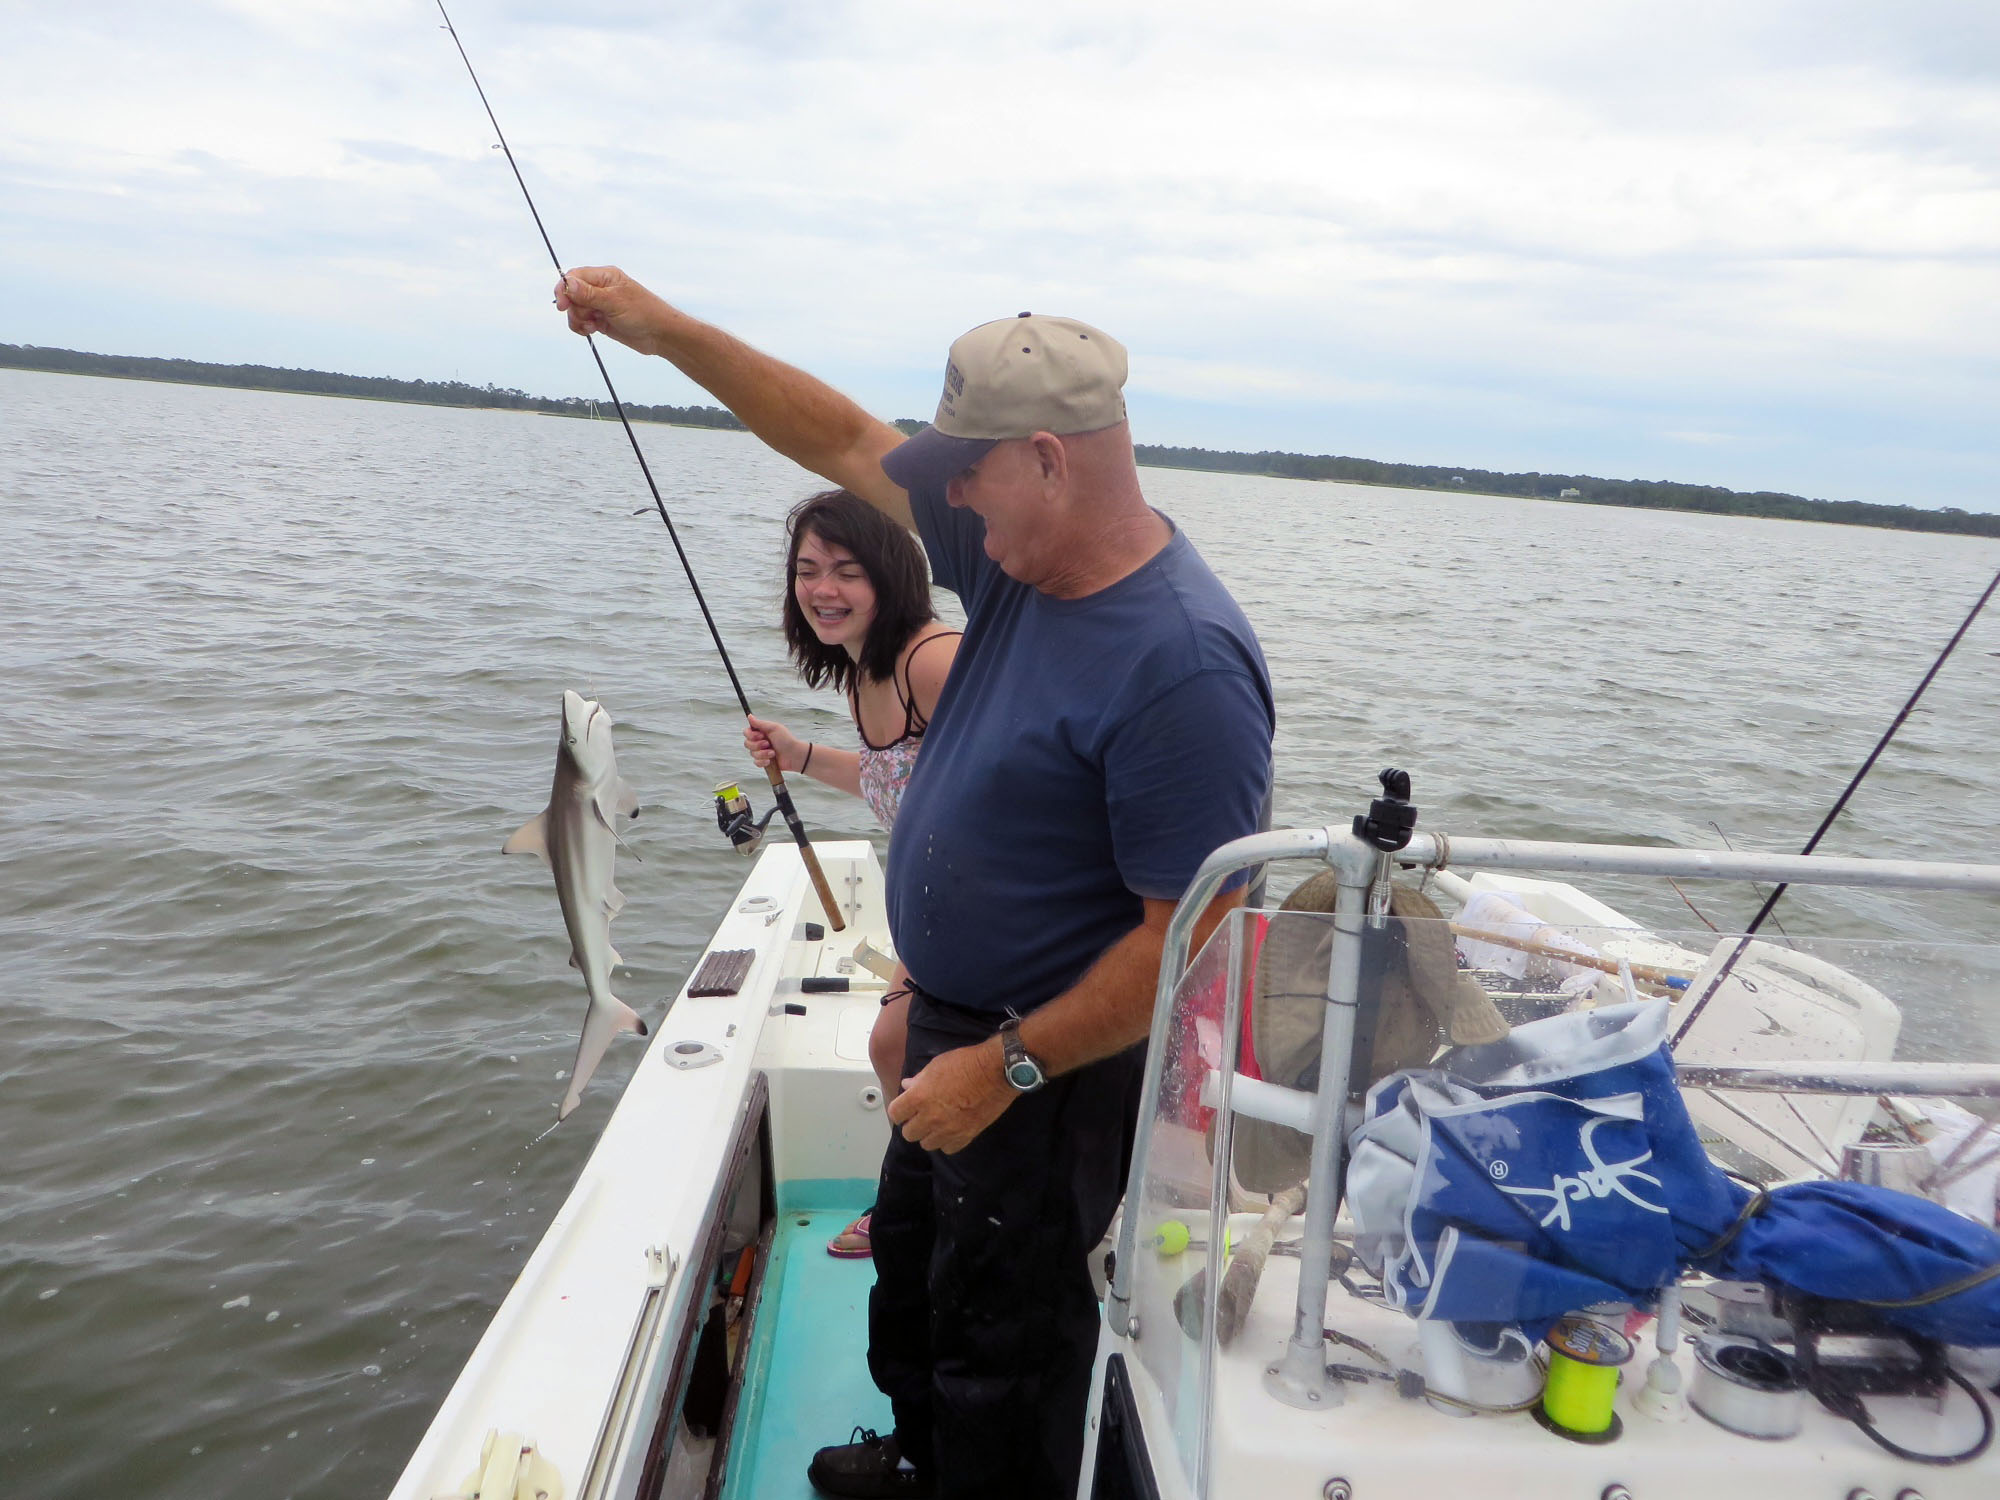 The giving bunny vacation pics 627handworks for Apalachicola fishing charters